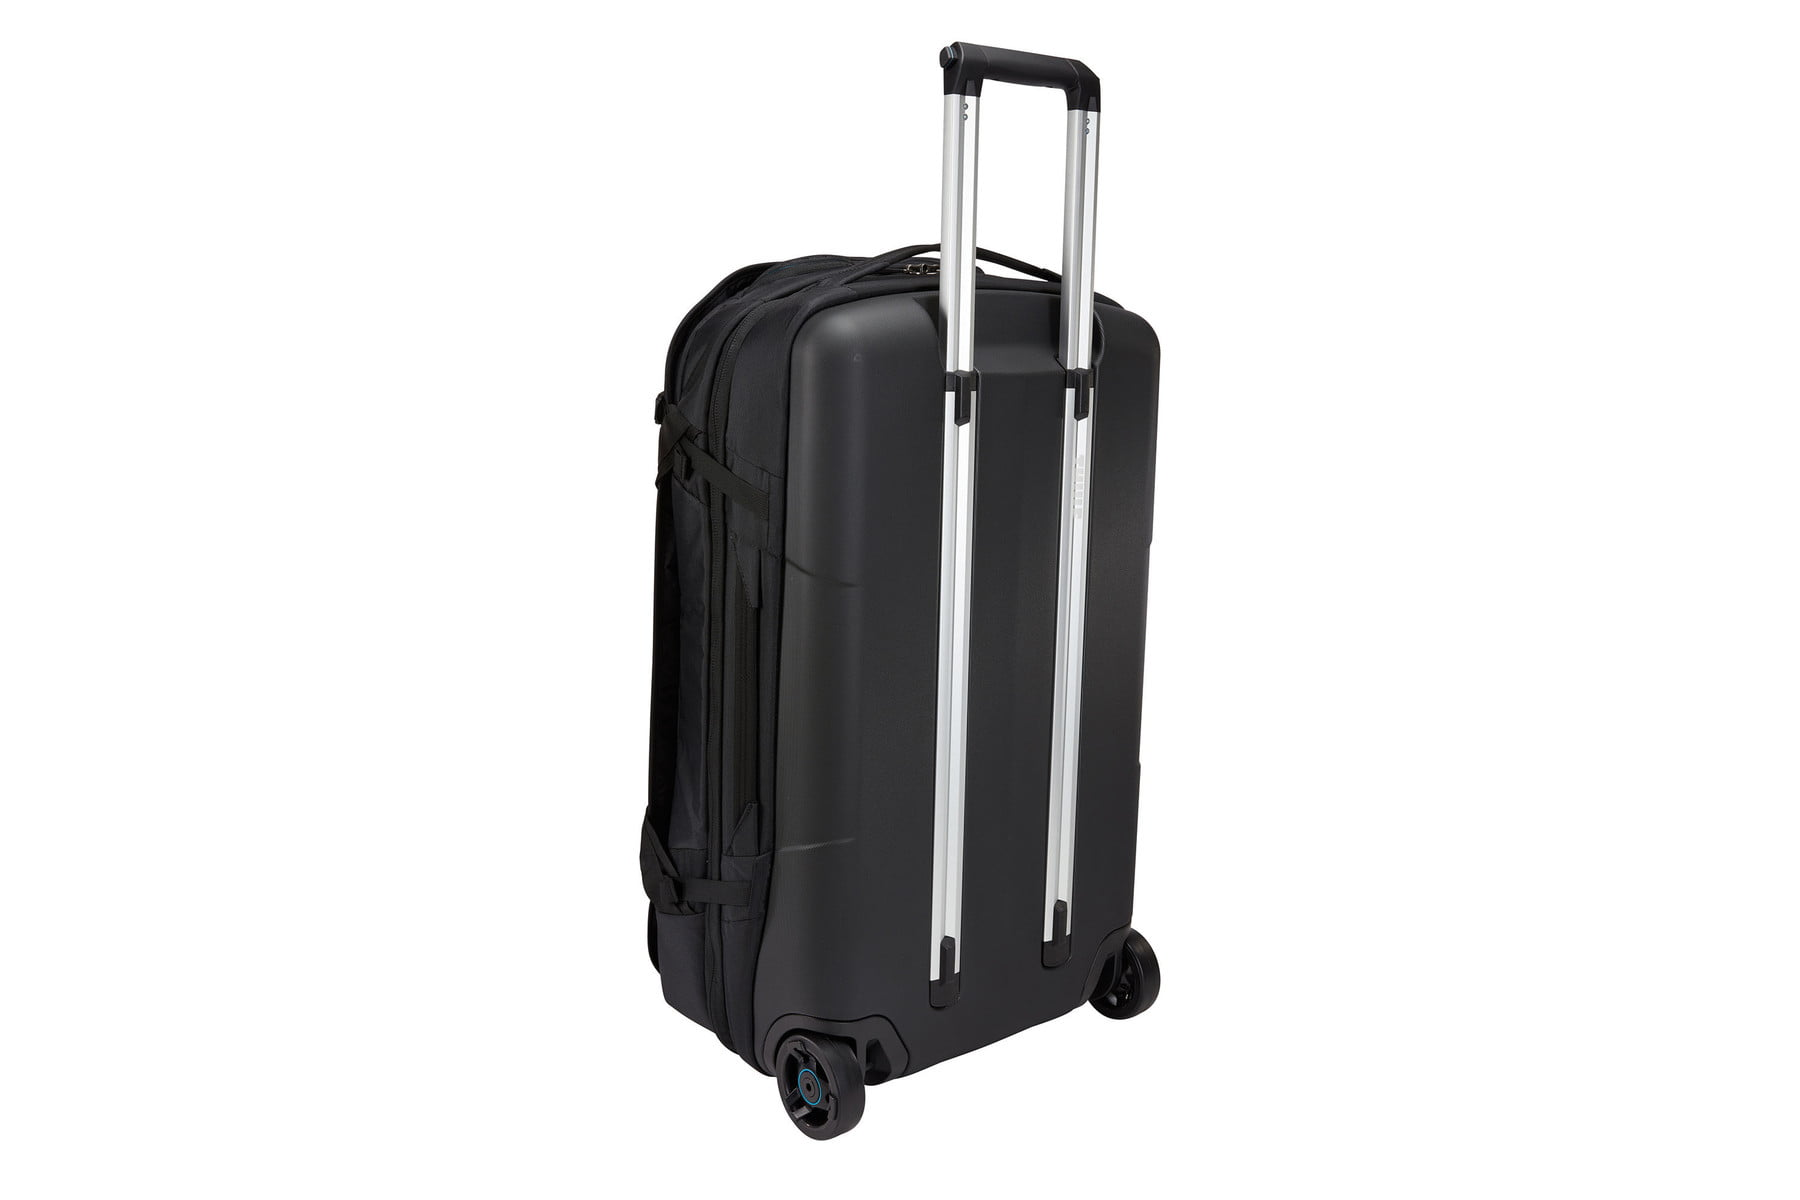 Geanta voiaj Thule Subterra Luggage 70cm Dark Shadow 2